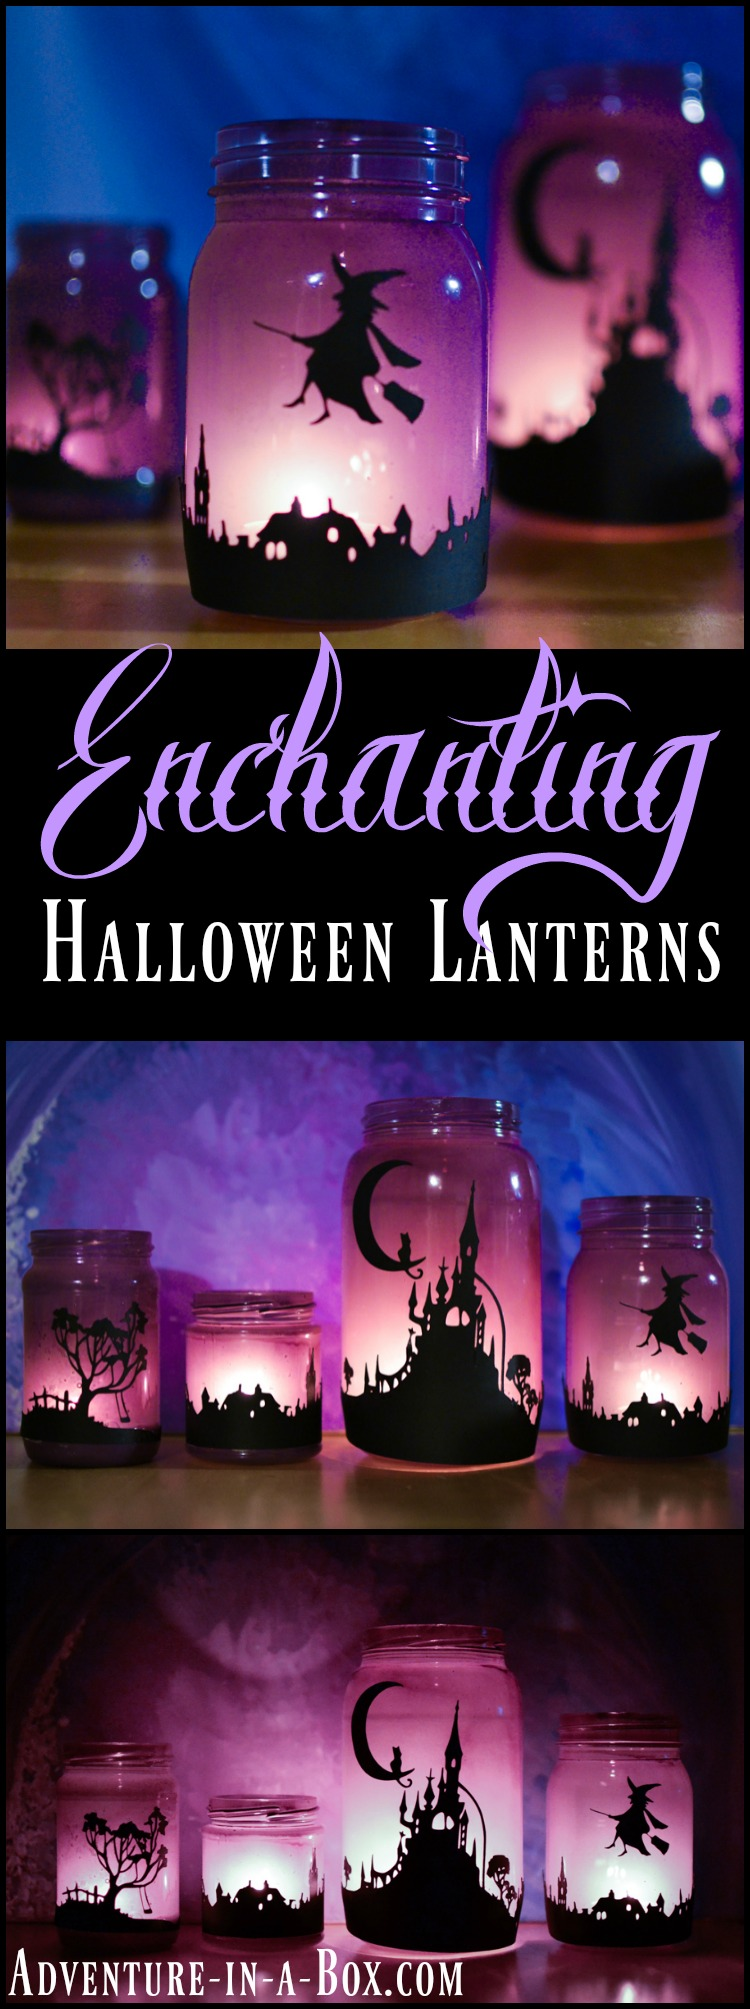 Make a set of enchanting Halloween lanterns from mason jars, suitable for elegant Halloween party decor.